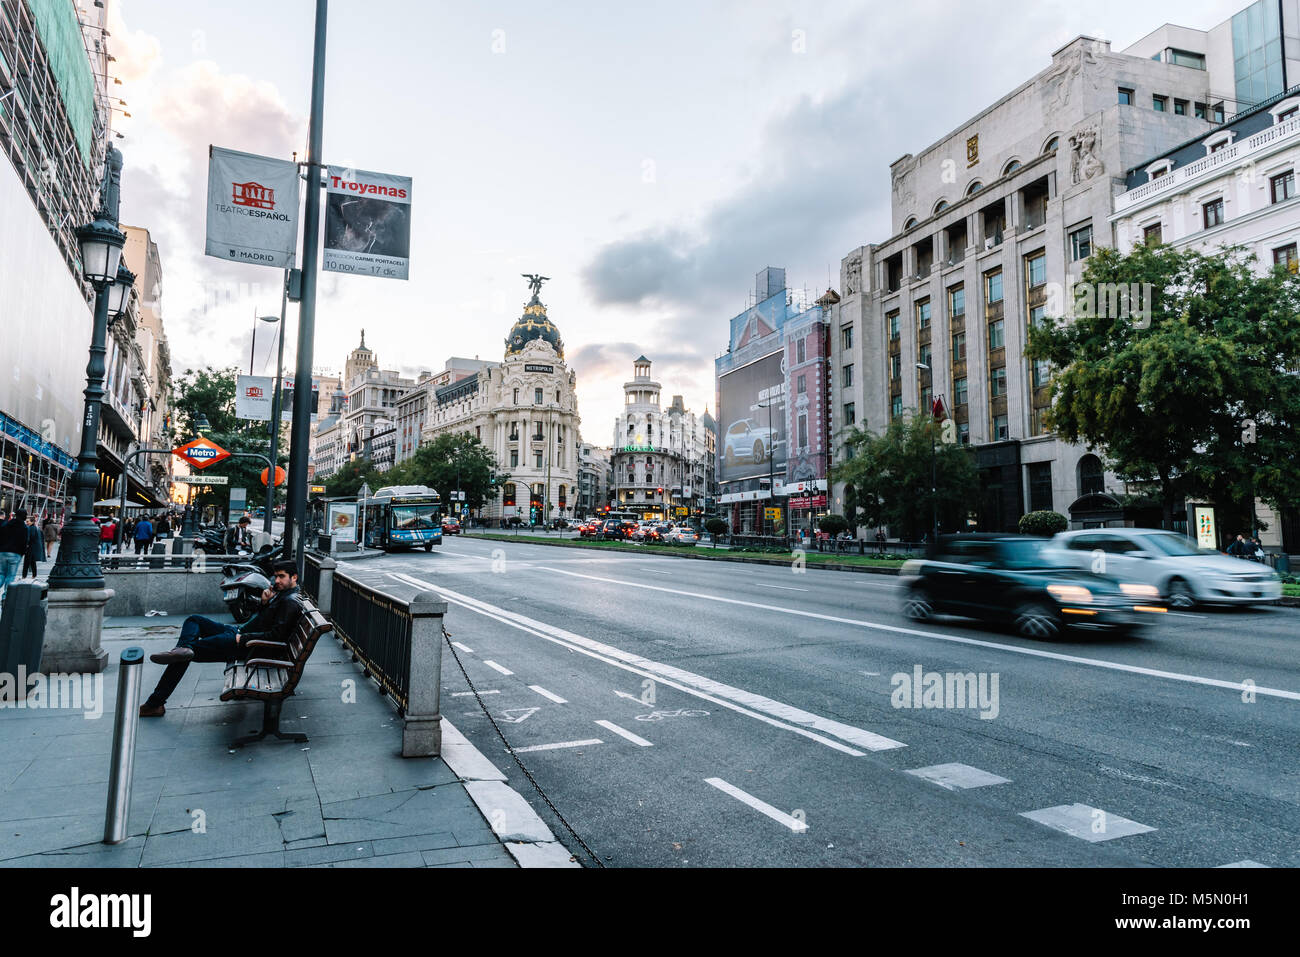 Madrid, Spain - November 3, 2017:  Alcala street and Metropolis Building in Madrid at sunset. Stock Photo